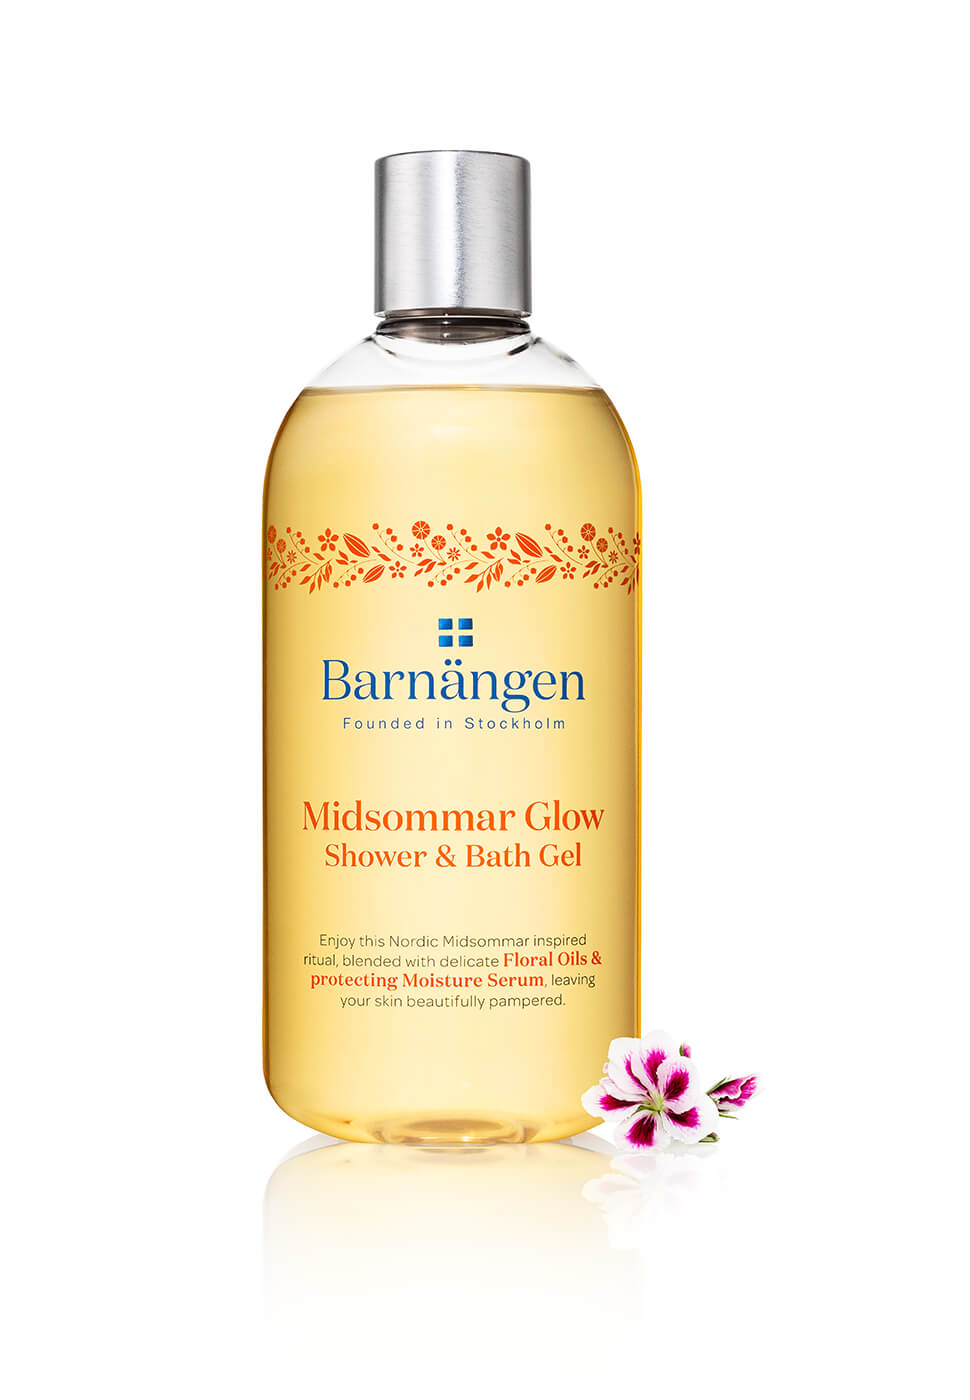 barnangen_com_nordic_rituals_midsommar_glow_shower_and_bath_gel_970x1400